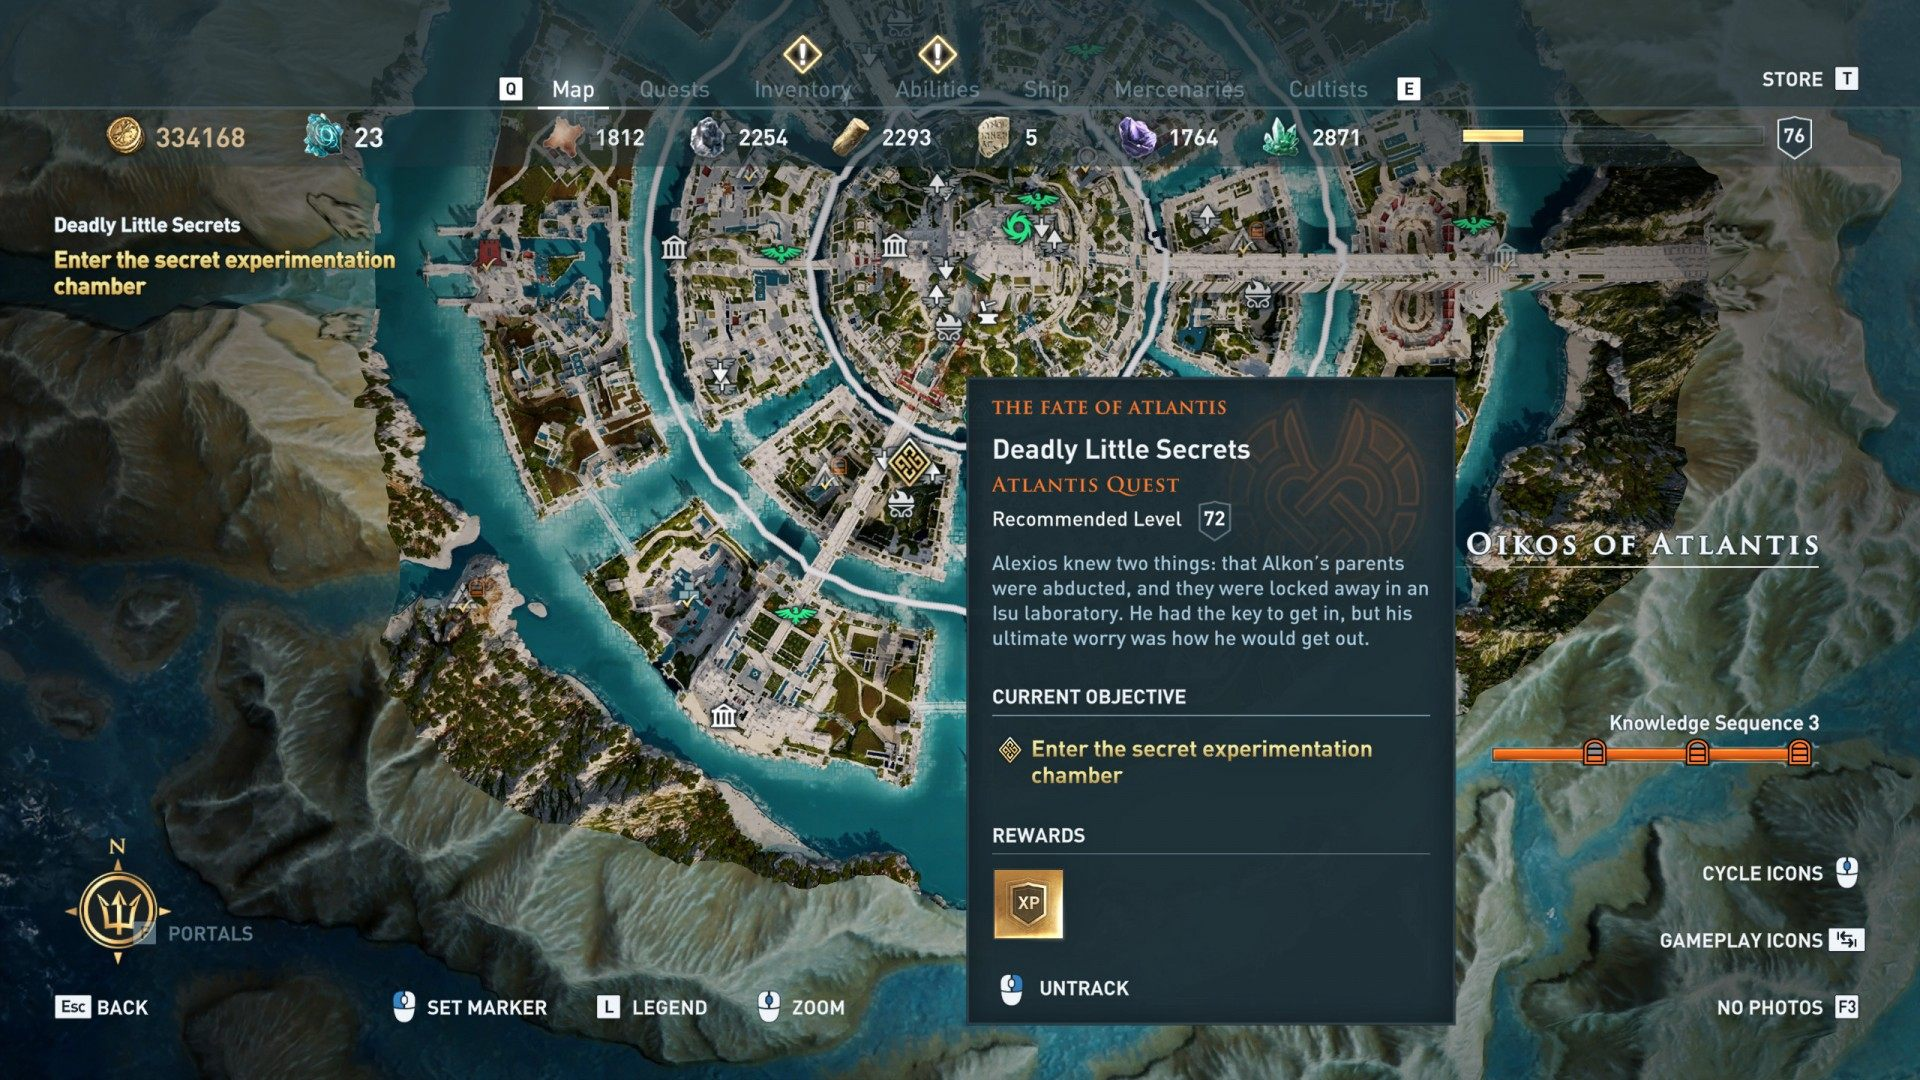 Deadly Little Secrets, Assassin's Creed Odyssey Quest